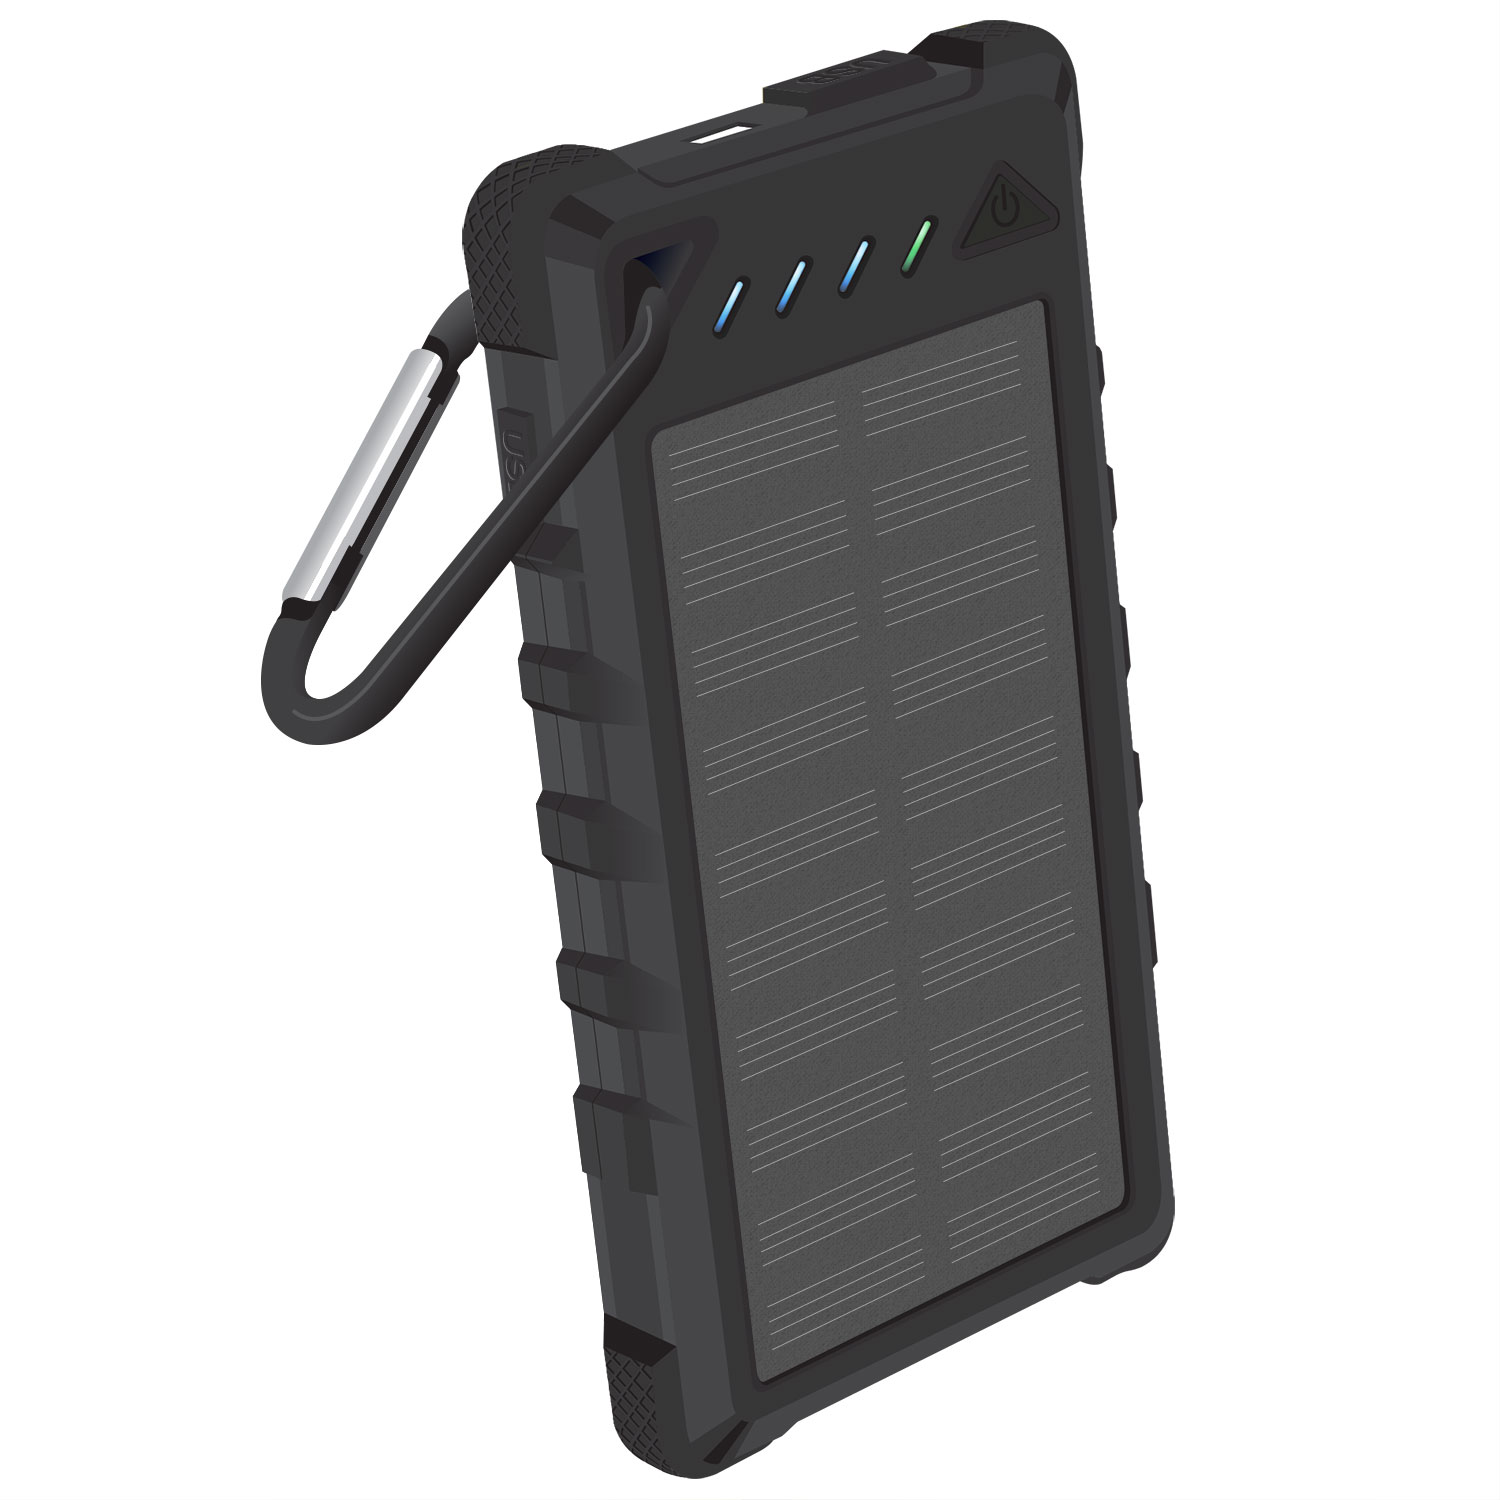 Huawei Honor 6 Plus Solar Powered Portable PowerBank Black